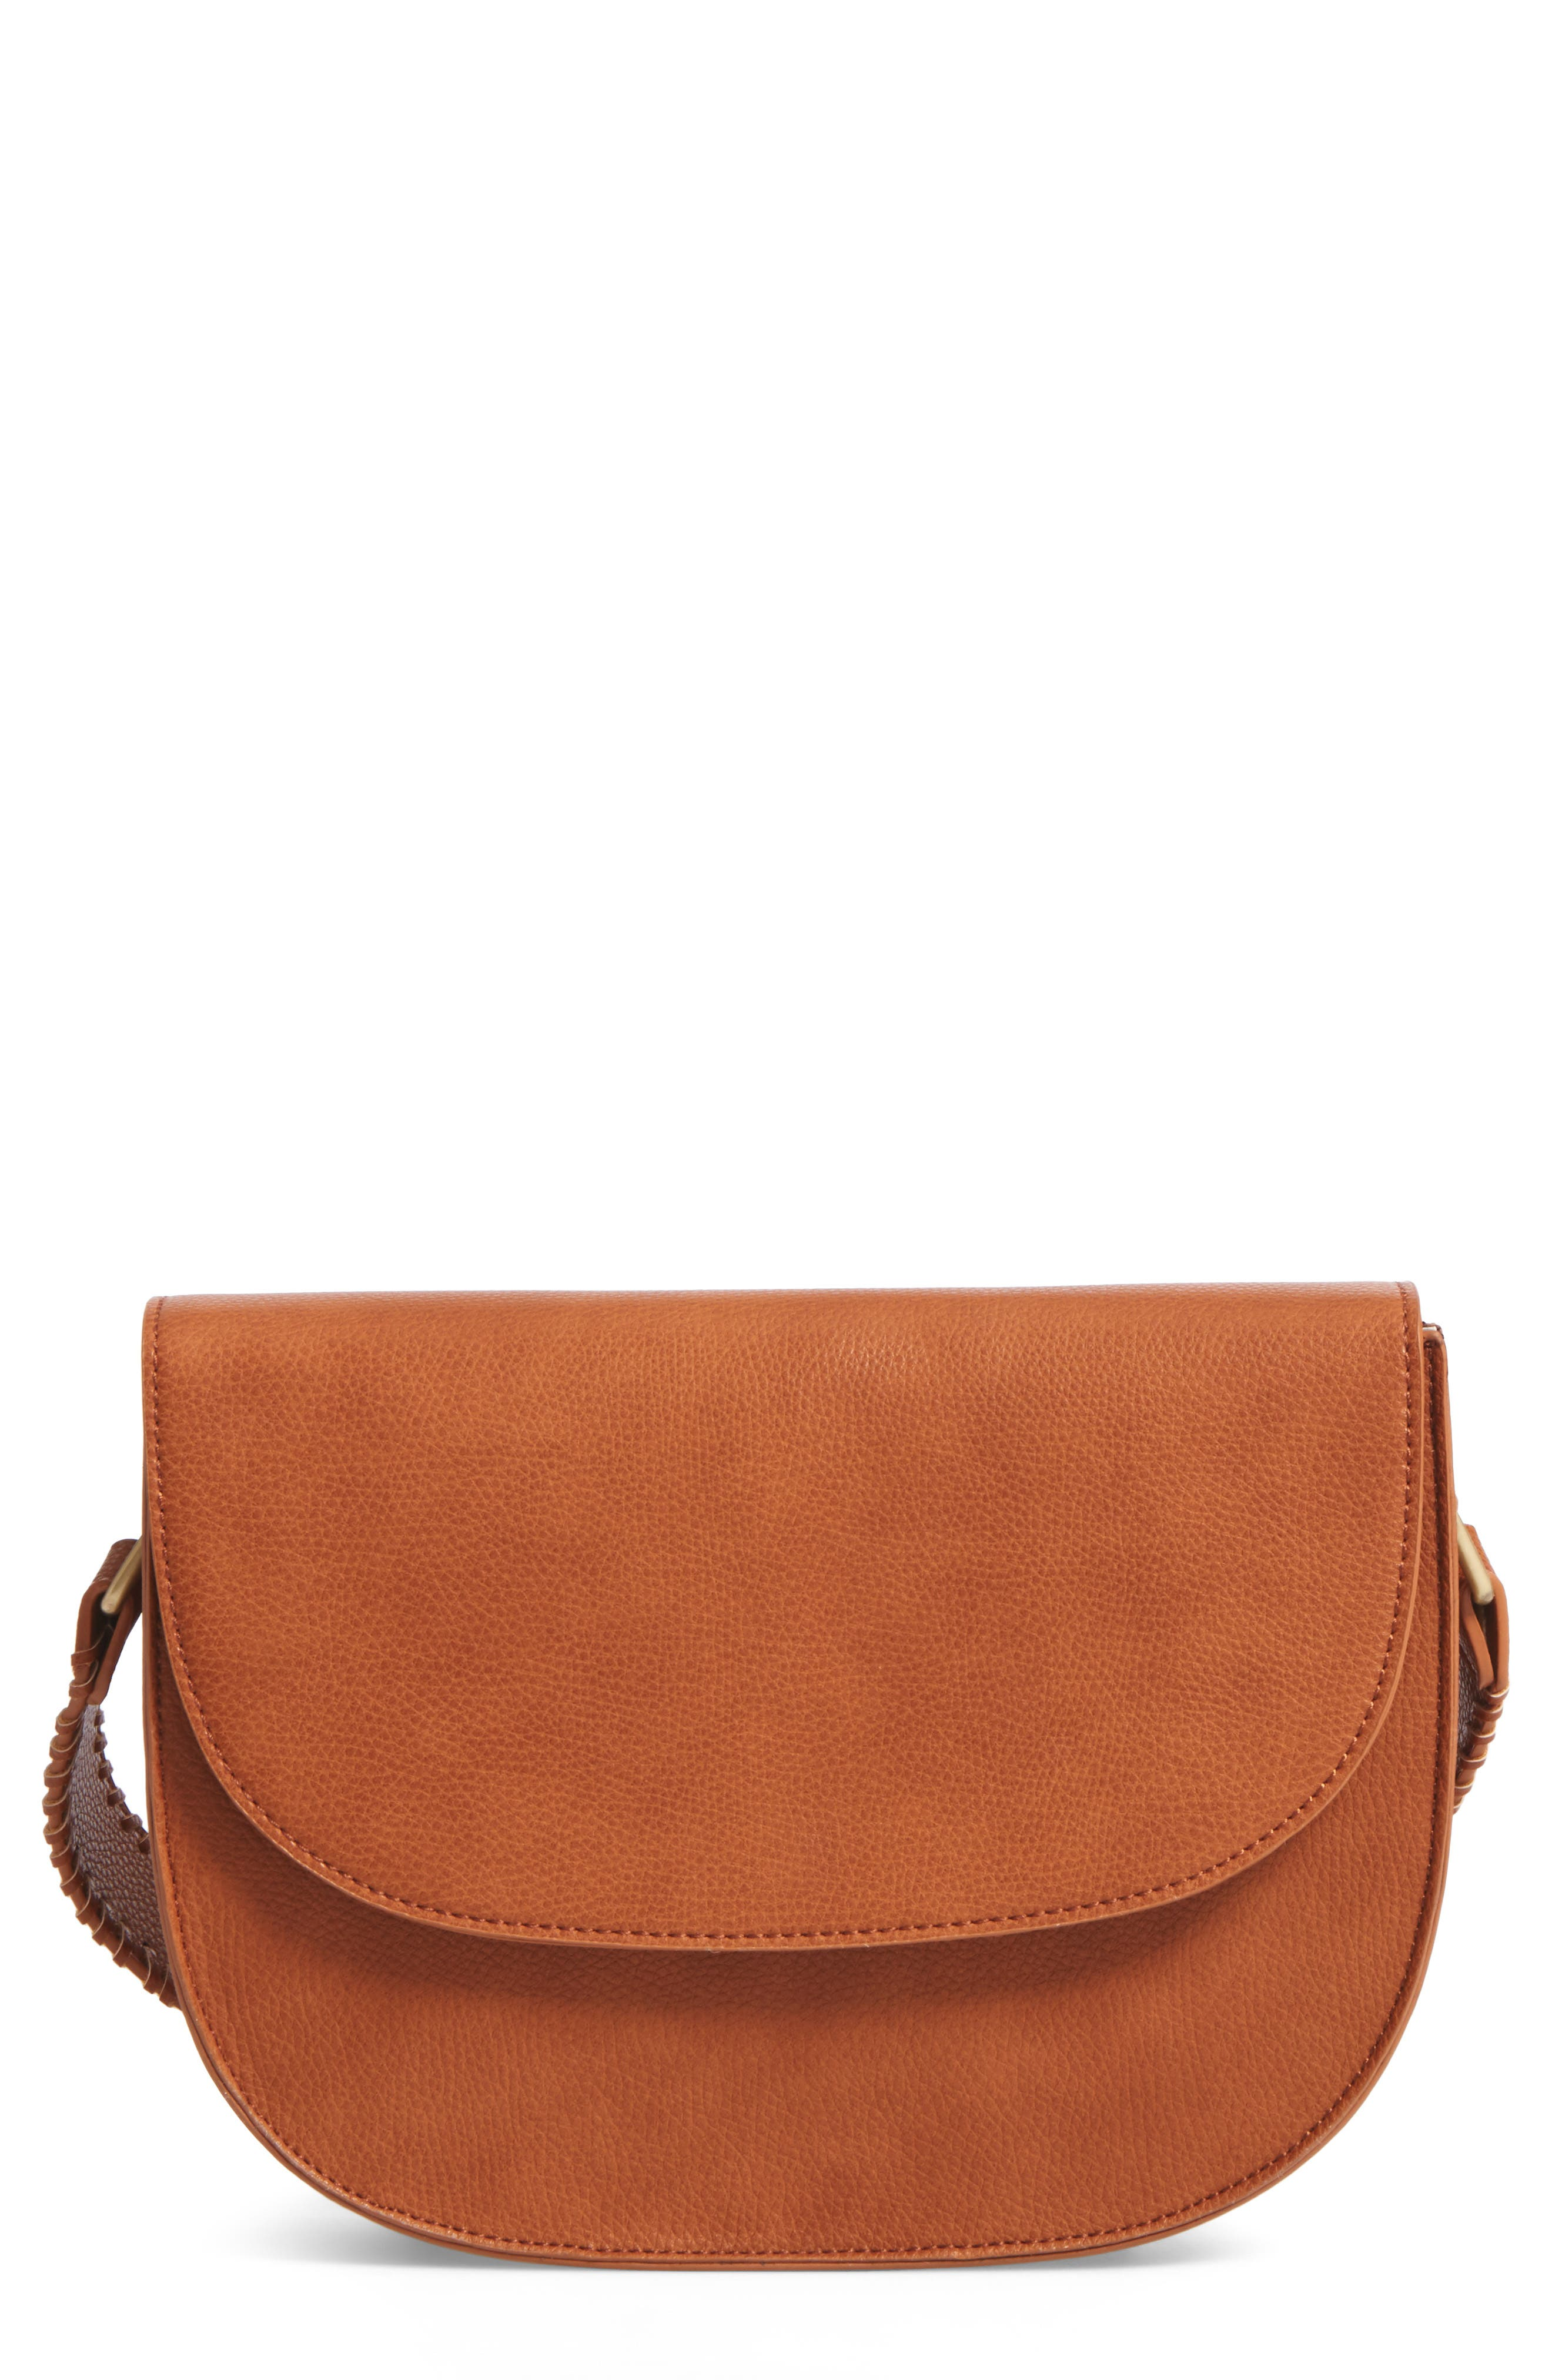 Alternate Image 1 Selected - Sole Society Honor Faux Leather Messenger Bag